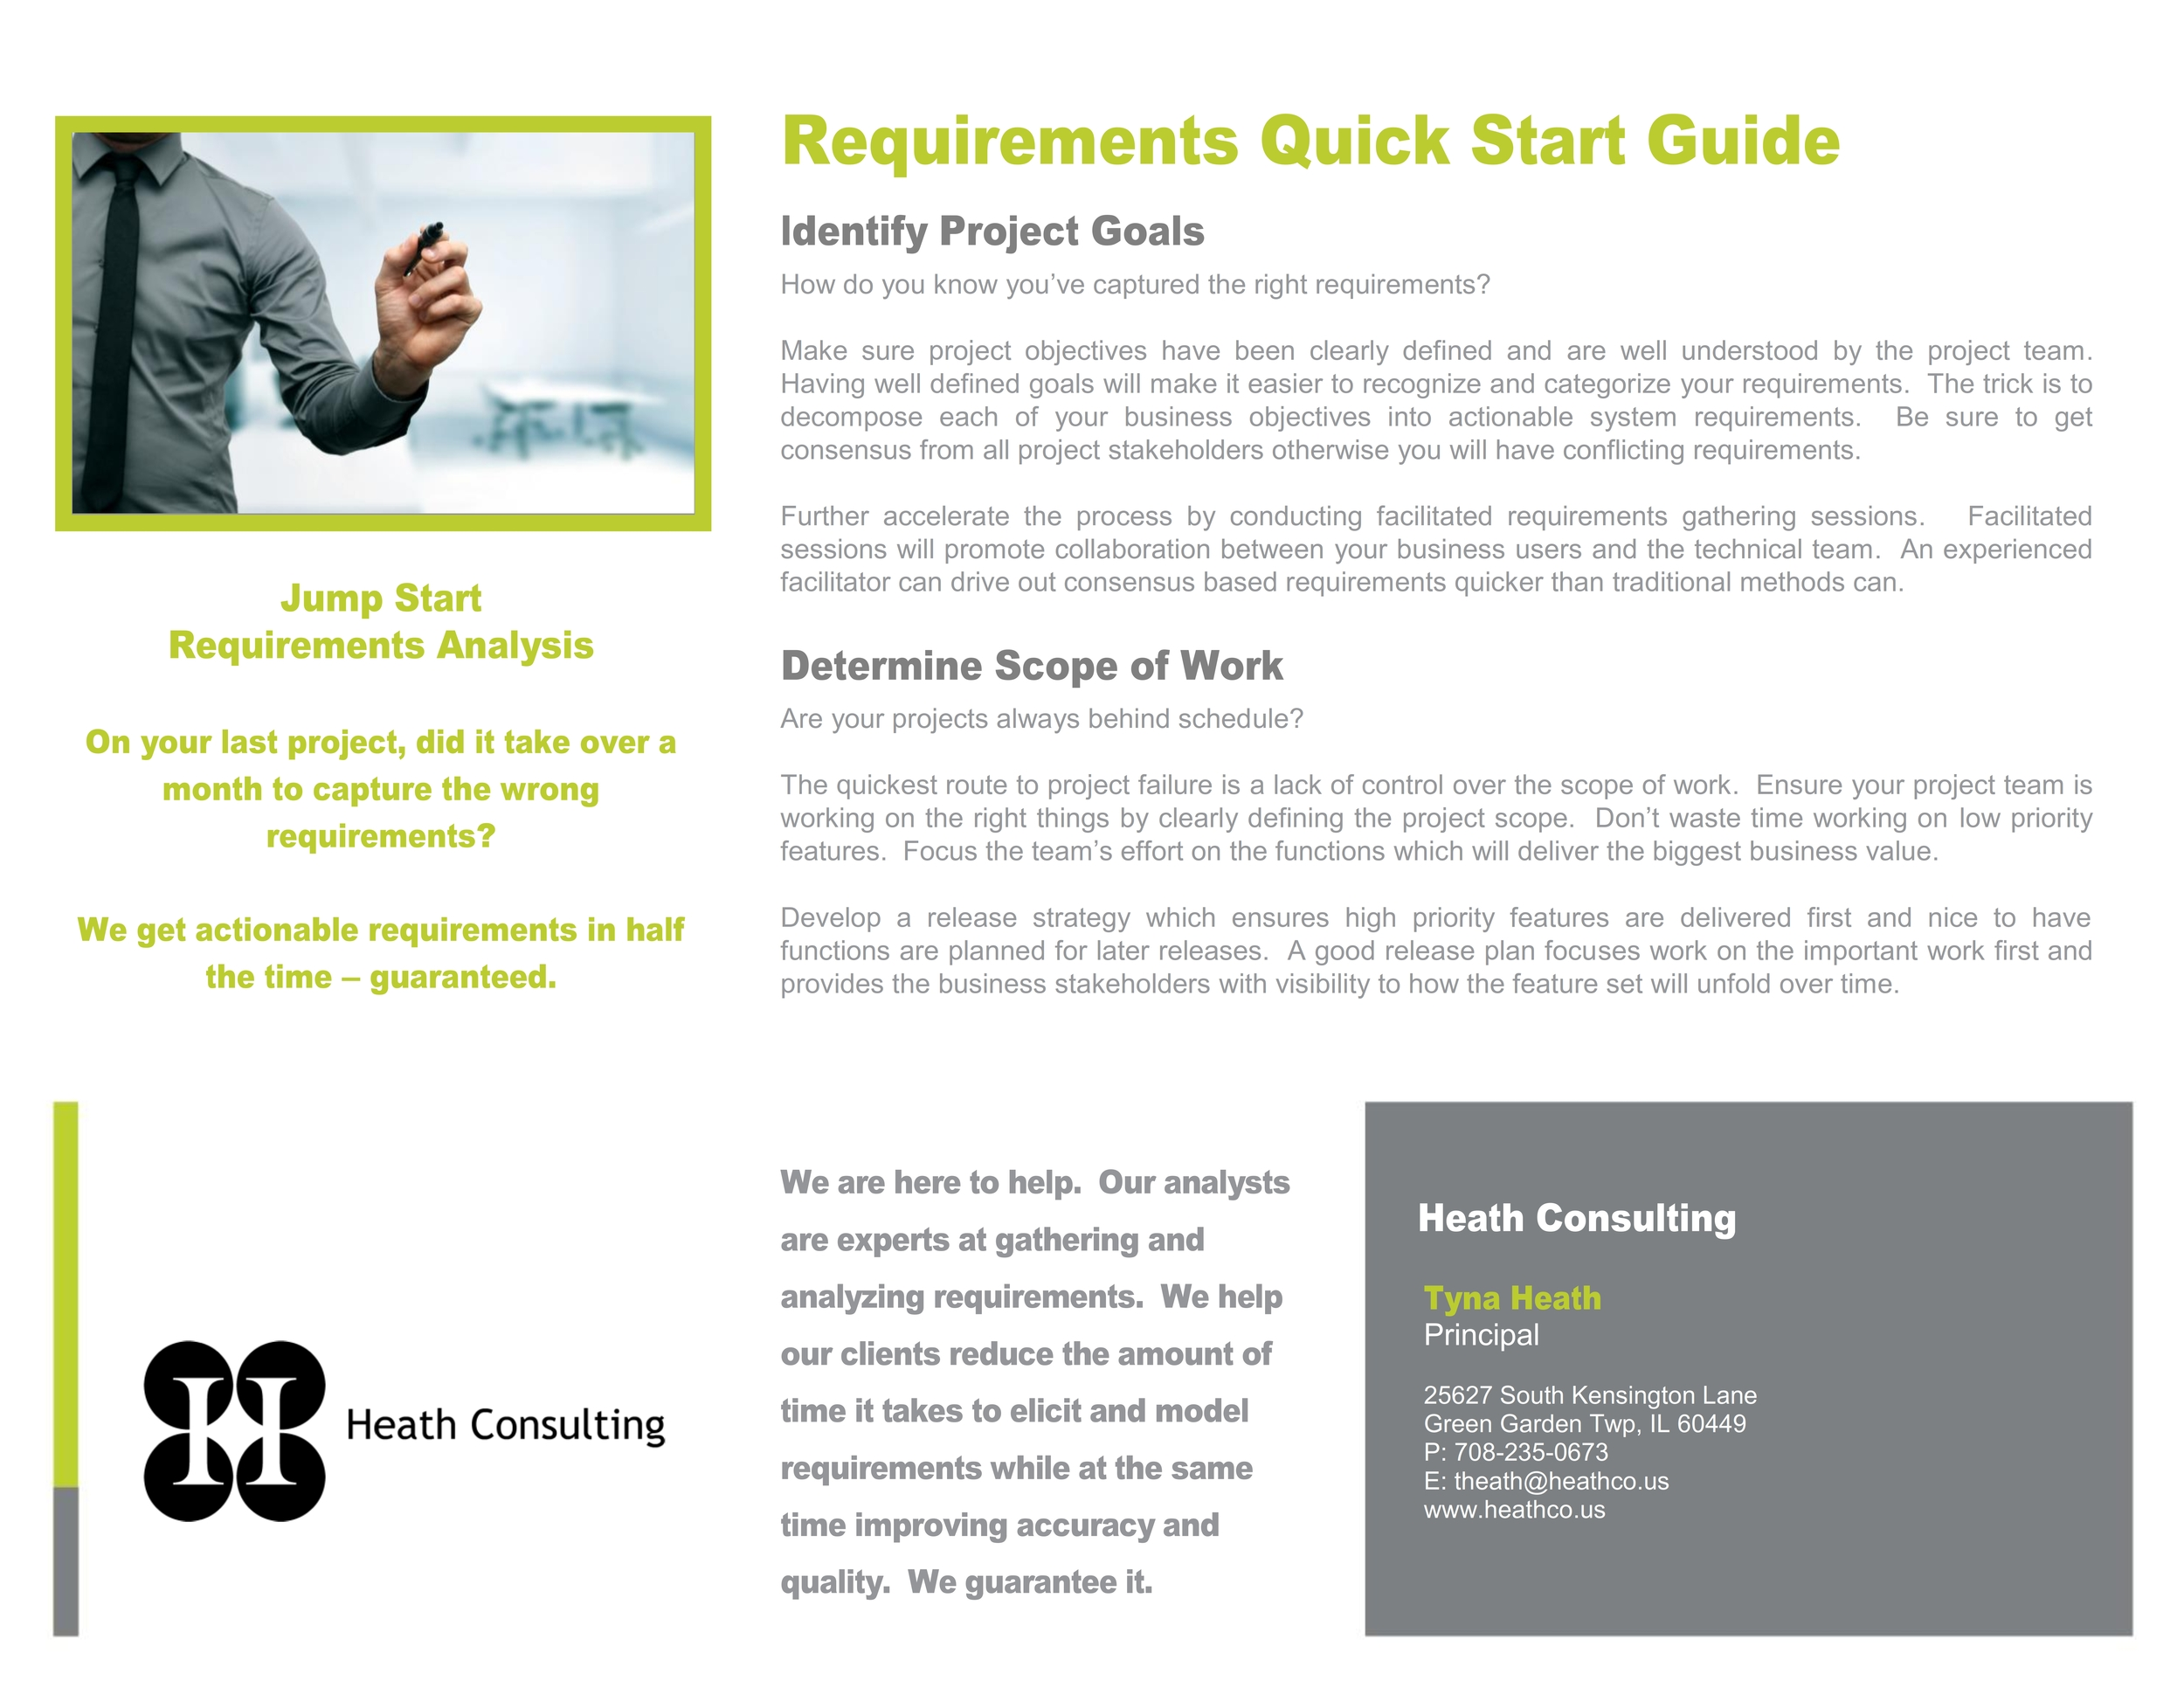 Click to view Requirements Quick Start Guide